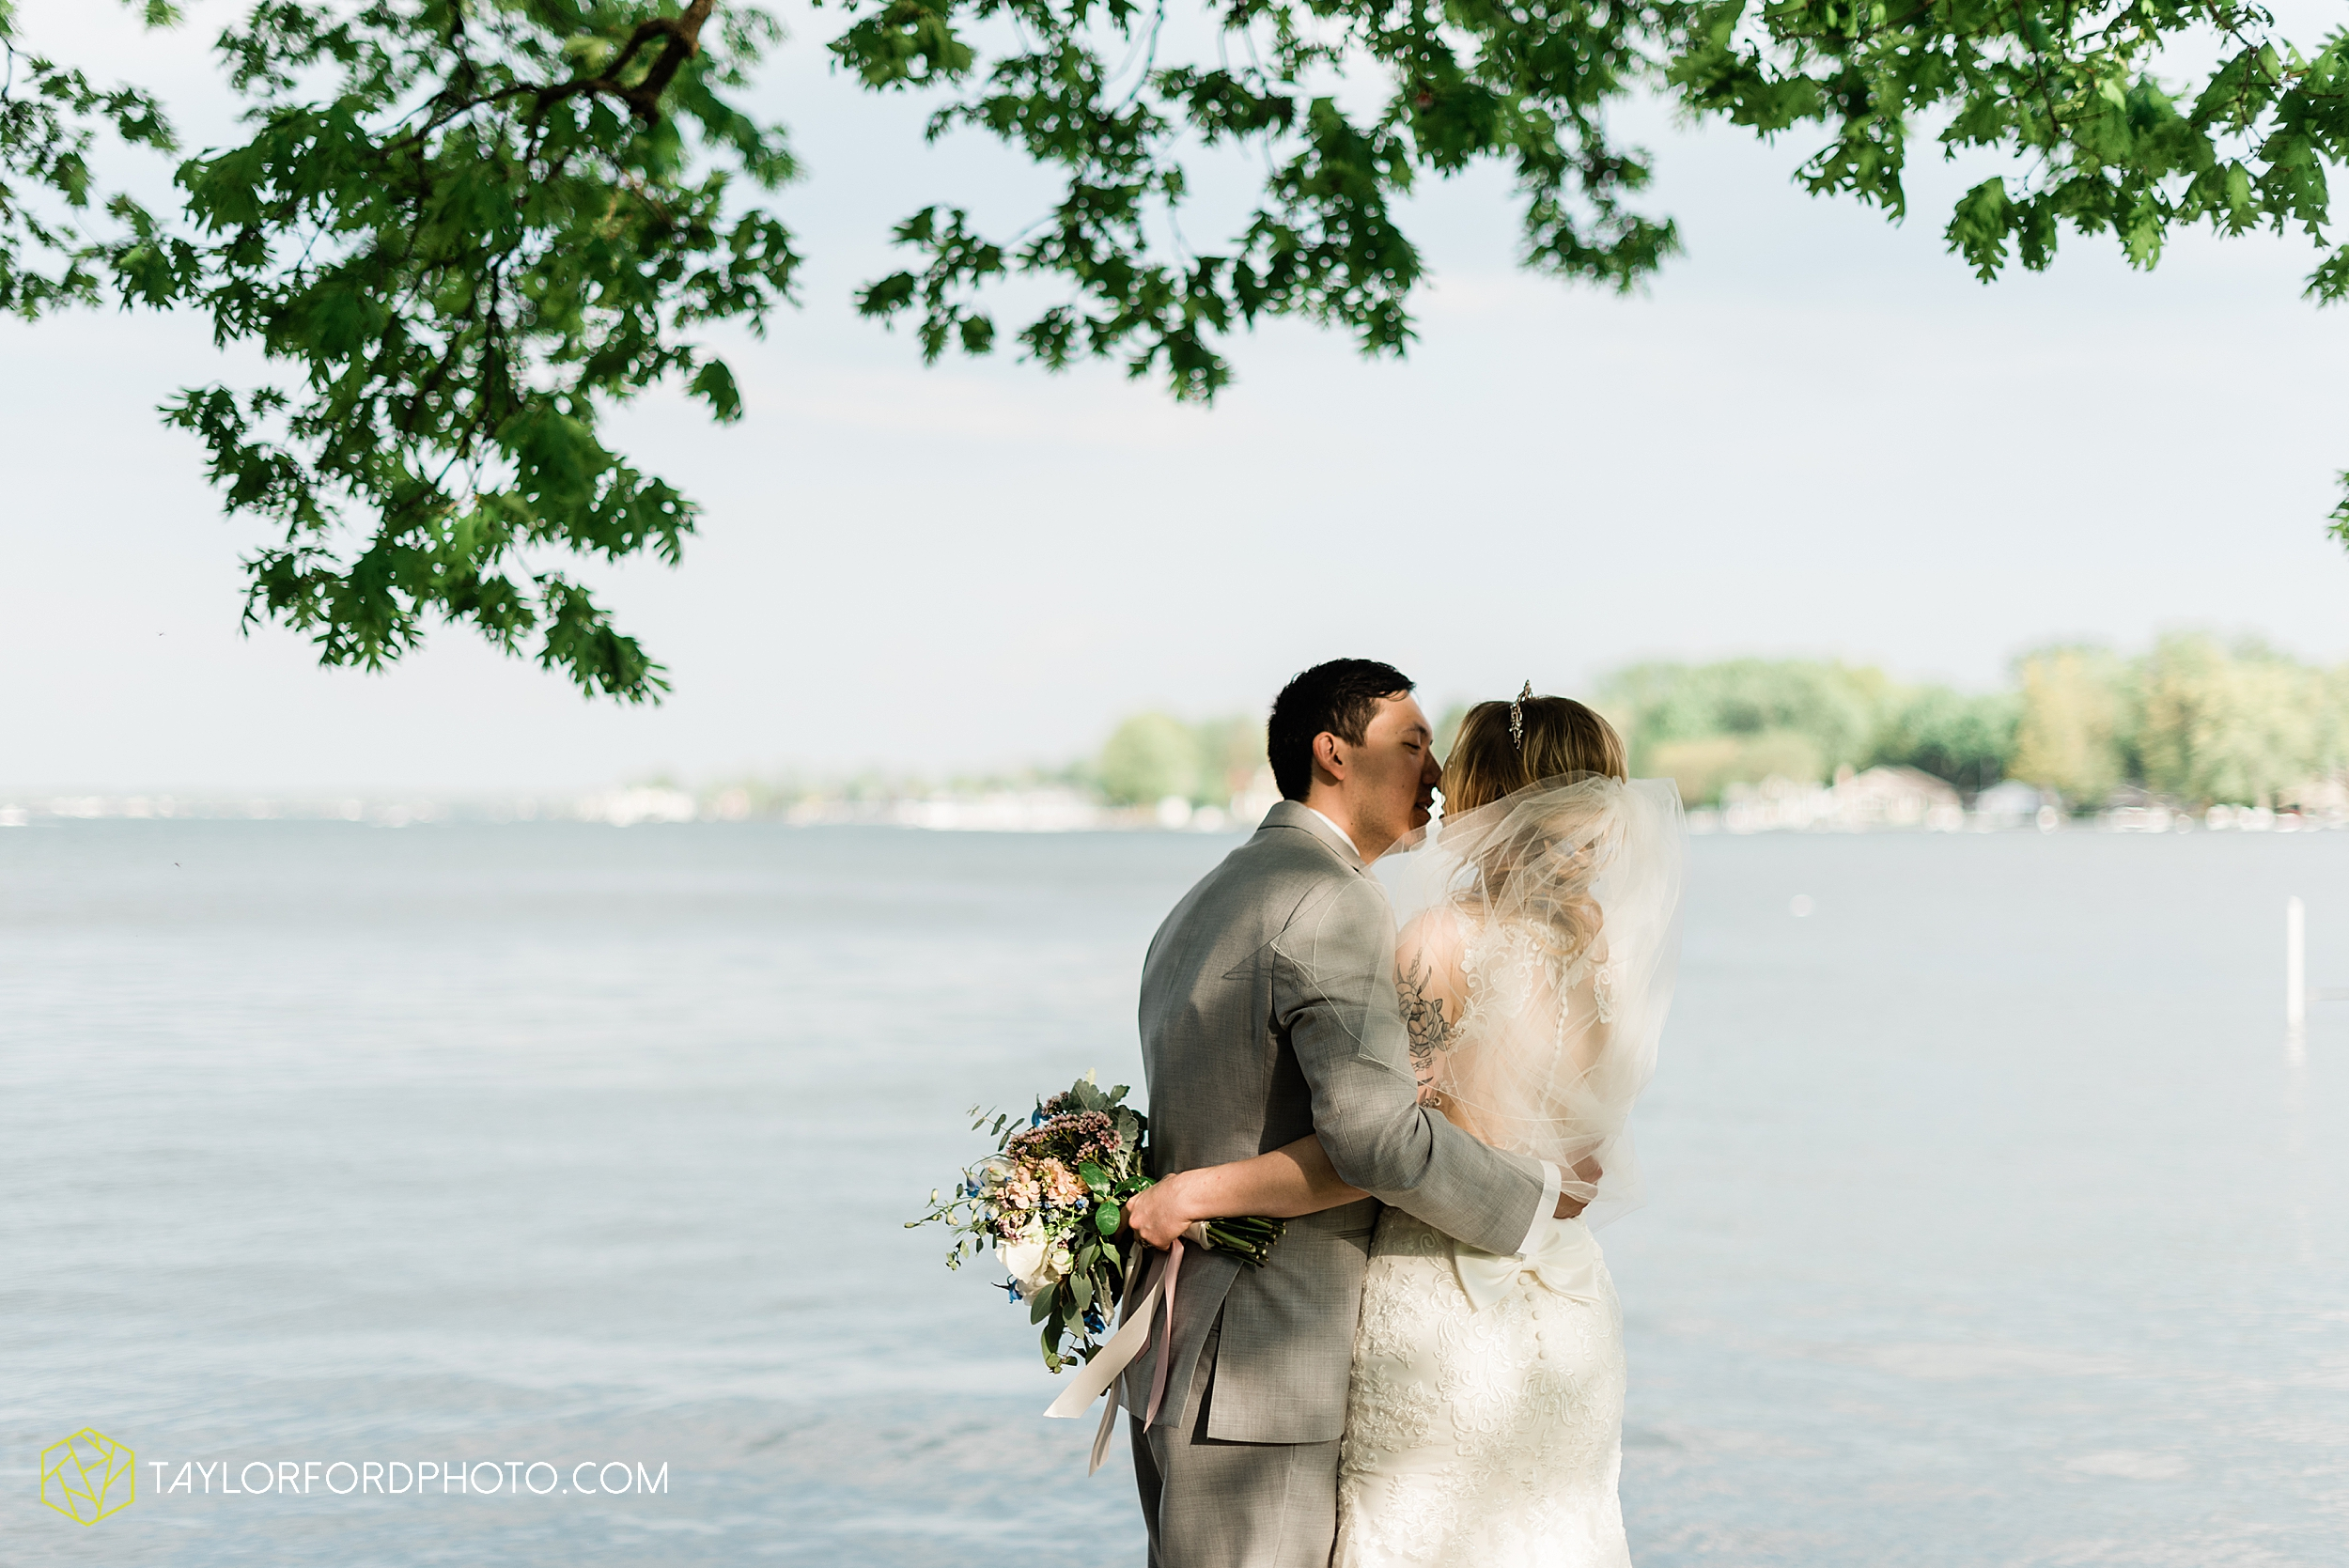 janine-shaun-oakwood-resort-syracuse-indiana-lake-wawasee-wedding-hilltop-one-fine-day-photographer-photography-taylor-ford-hirschy-photographer_2776.jpg